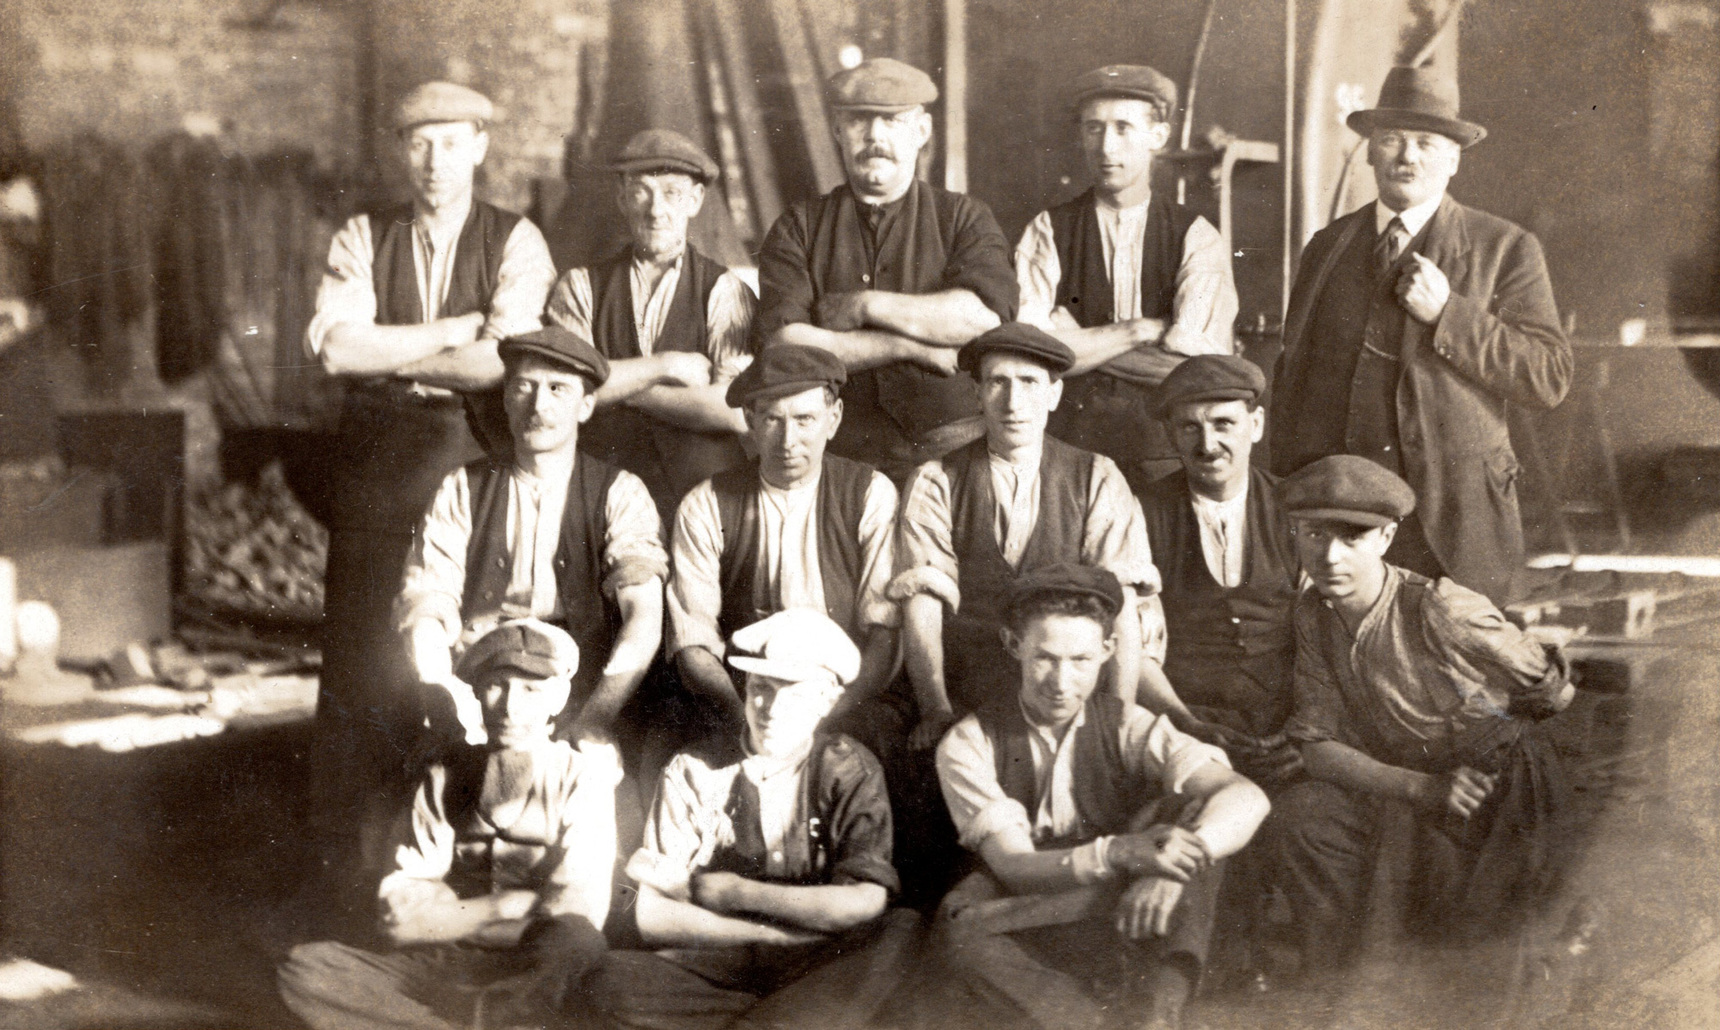 Group Of Workers Unidentified Occupation 1910s